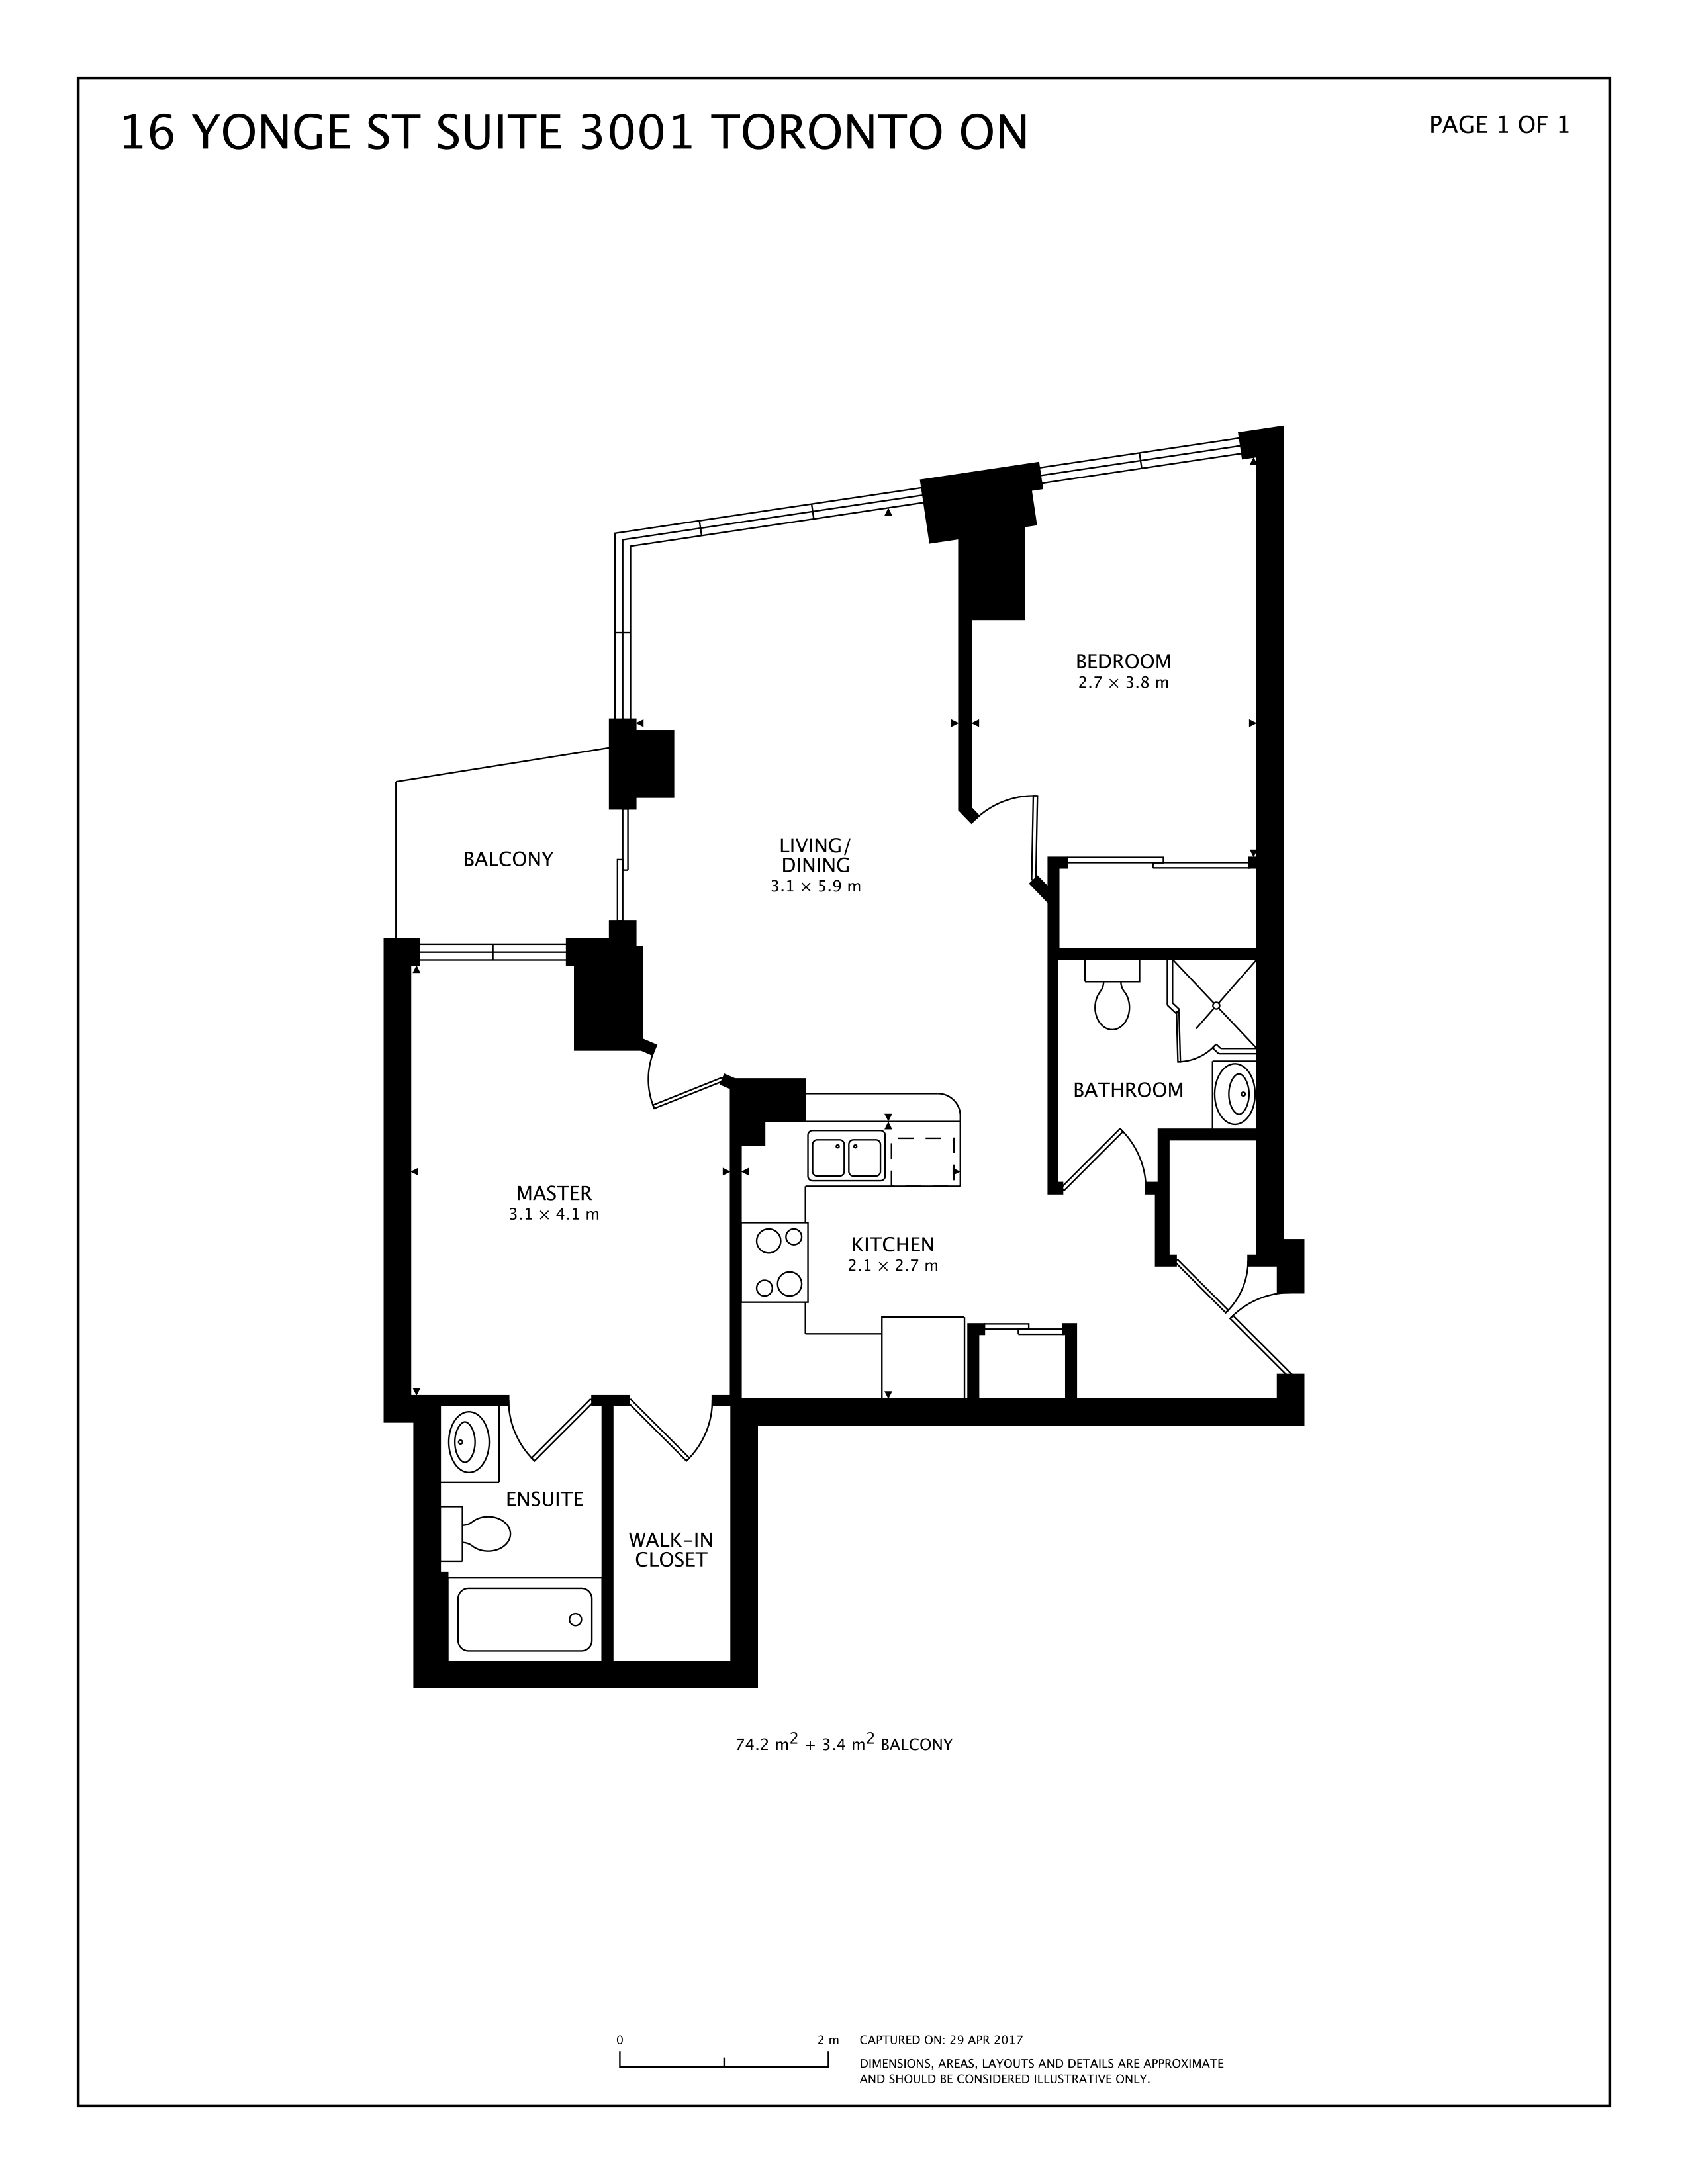 16 yonge street floor plans carpet review for 16 yonge floor plans